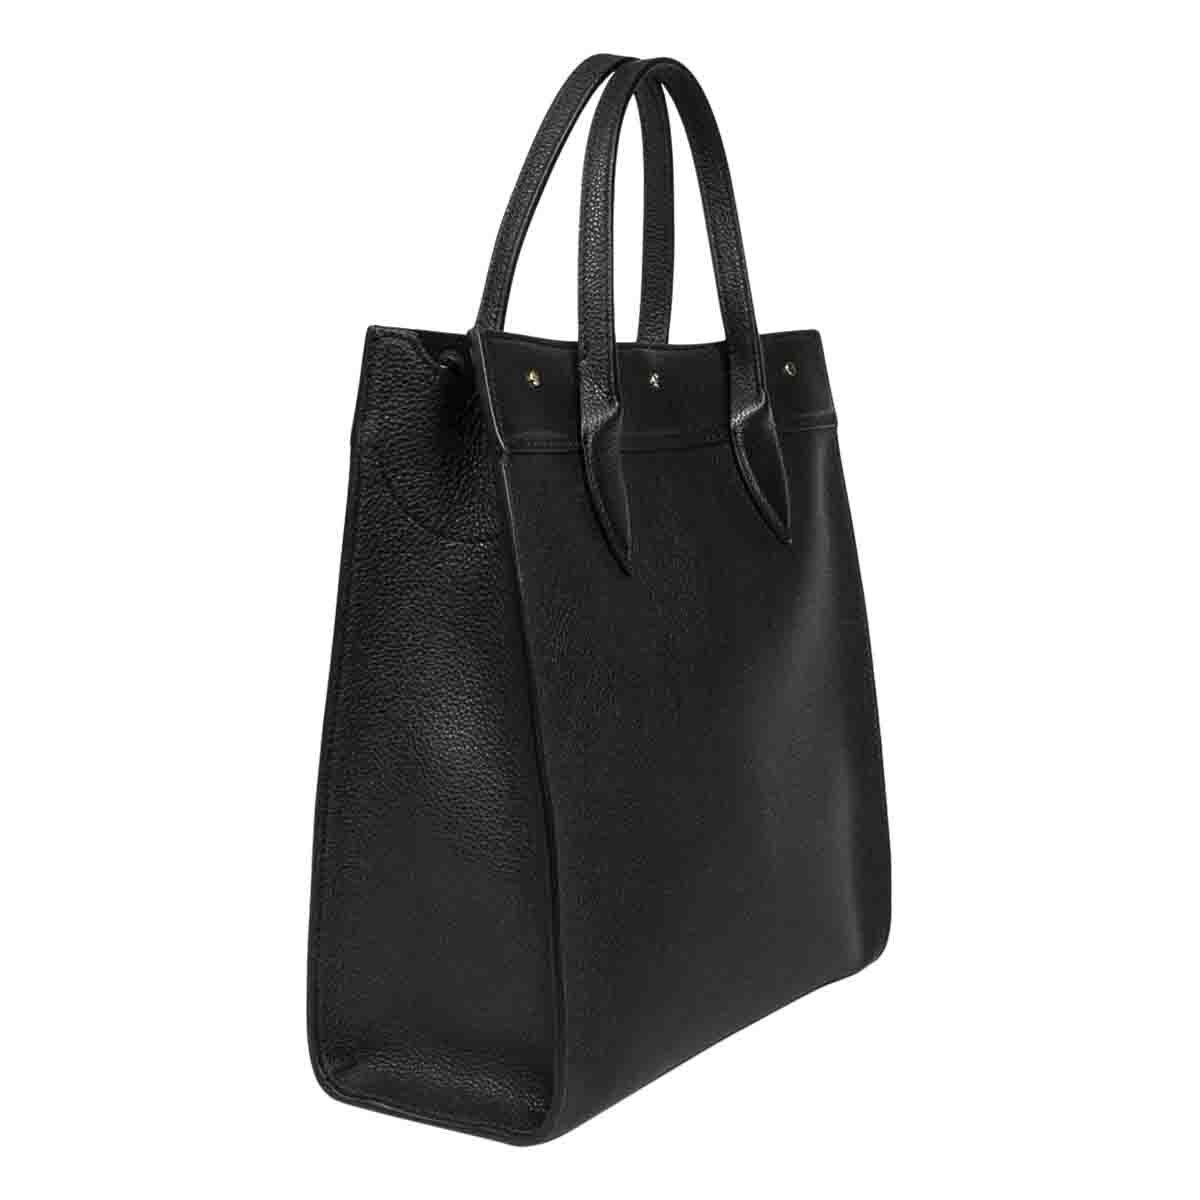 BORBONESE Leathers BORBONESE WOMEN'S BLACK LEATHER HANDBAG